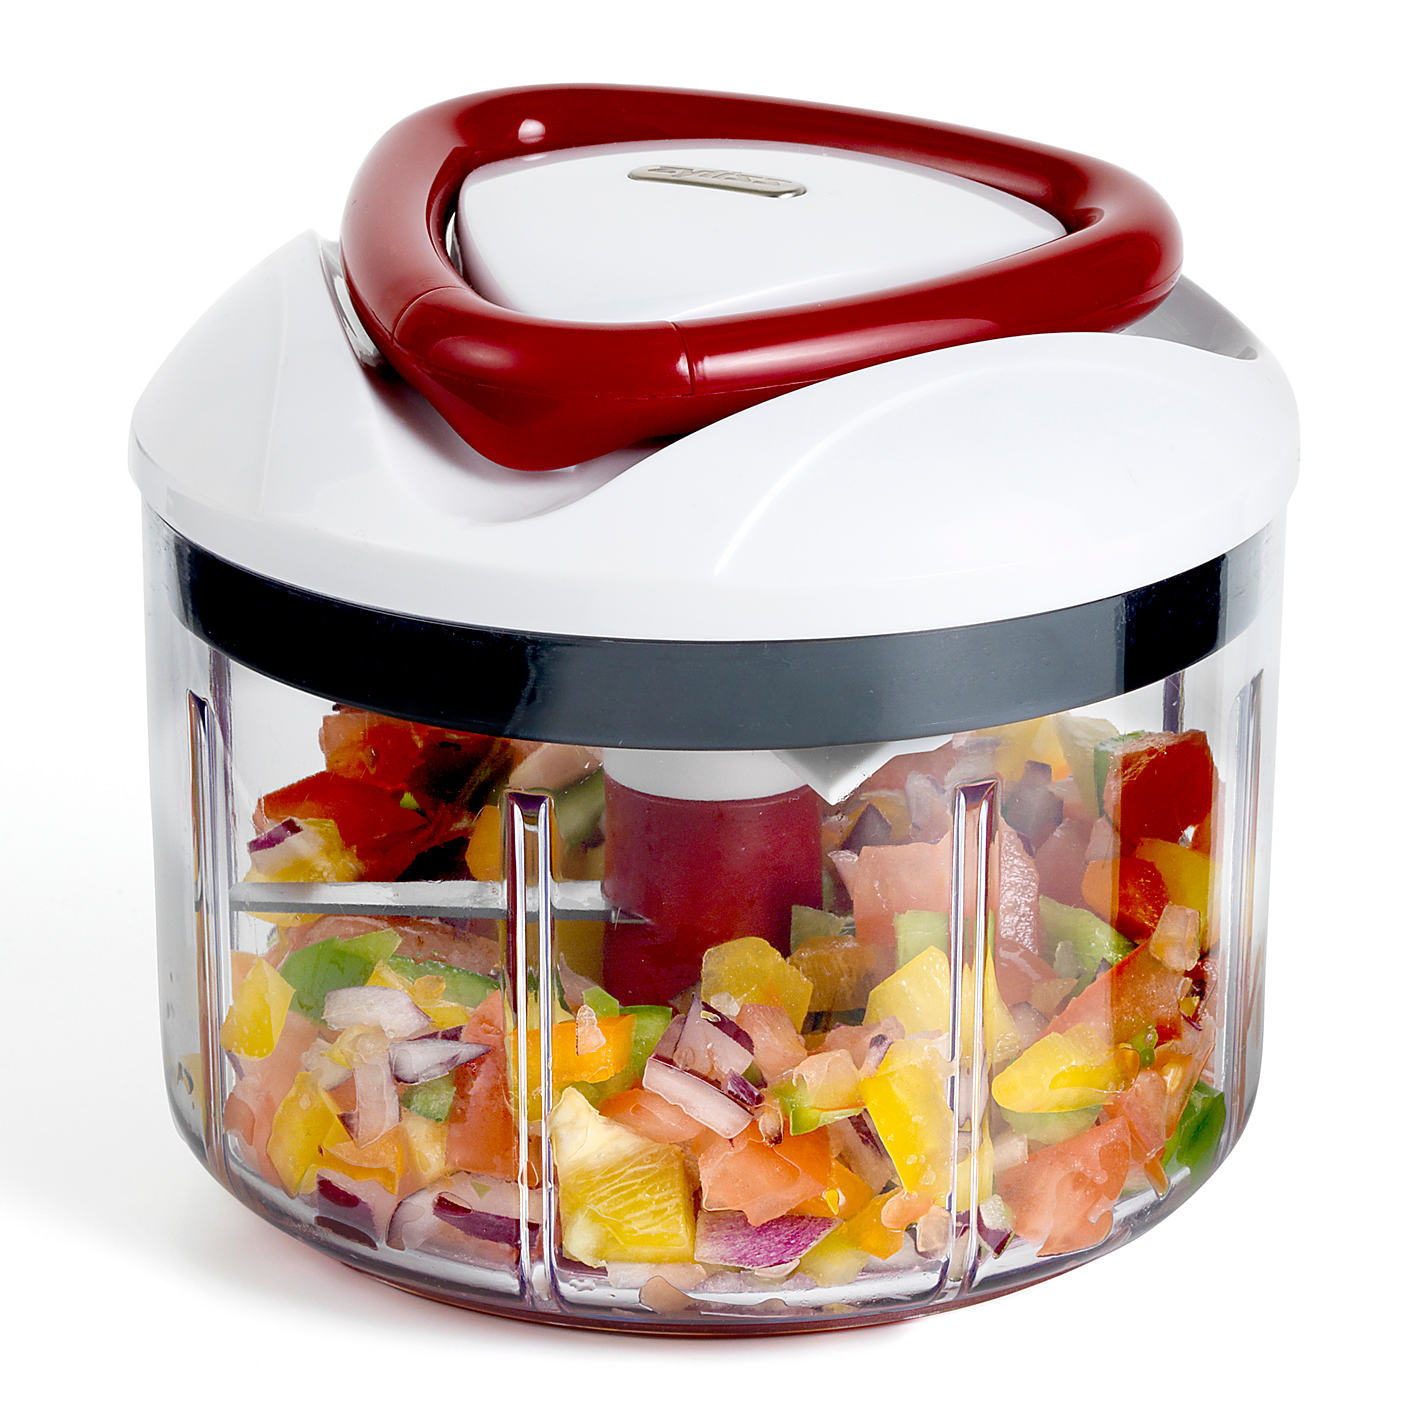 Zyliss Easy Pull Food Processor image